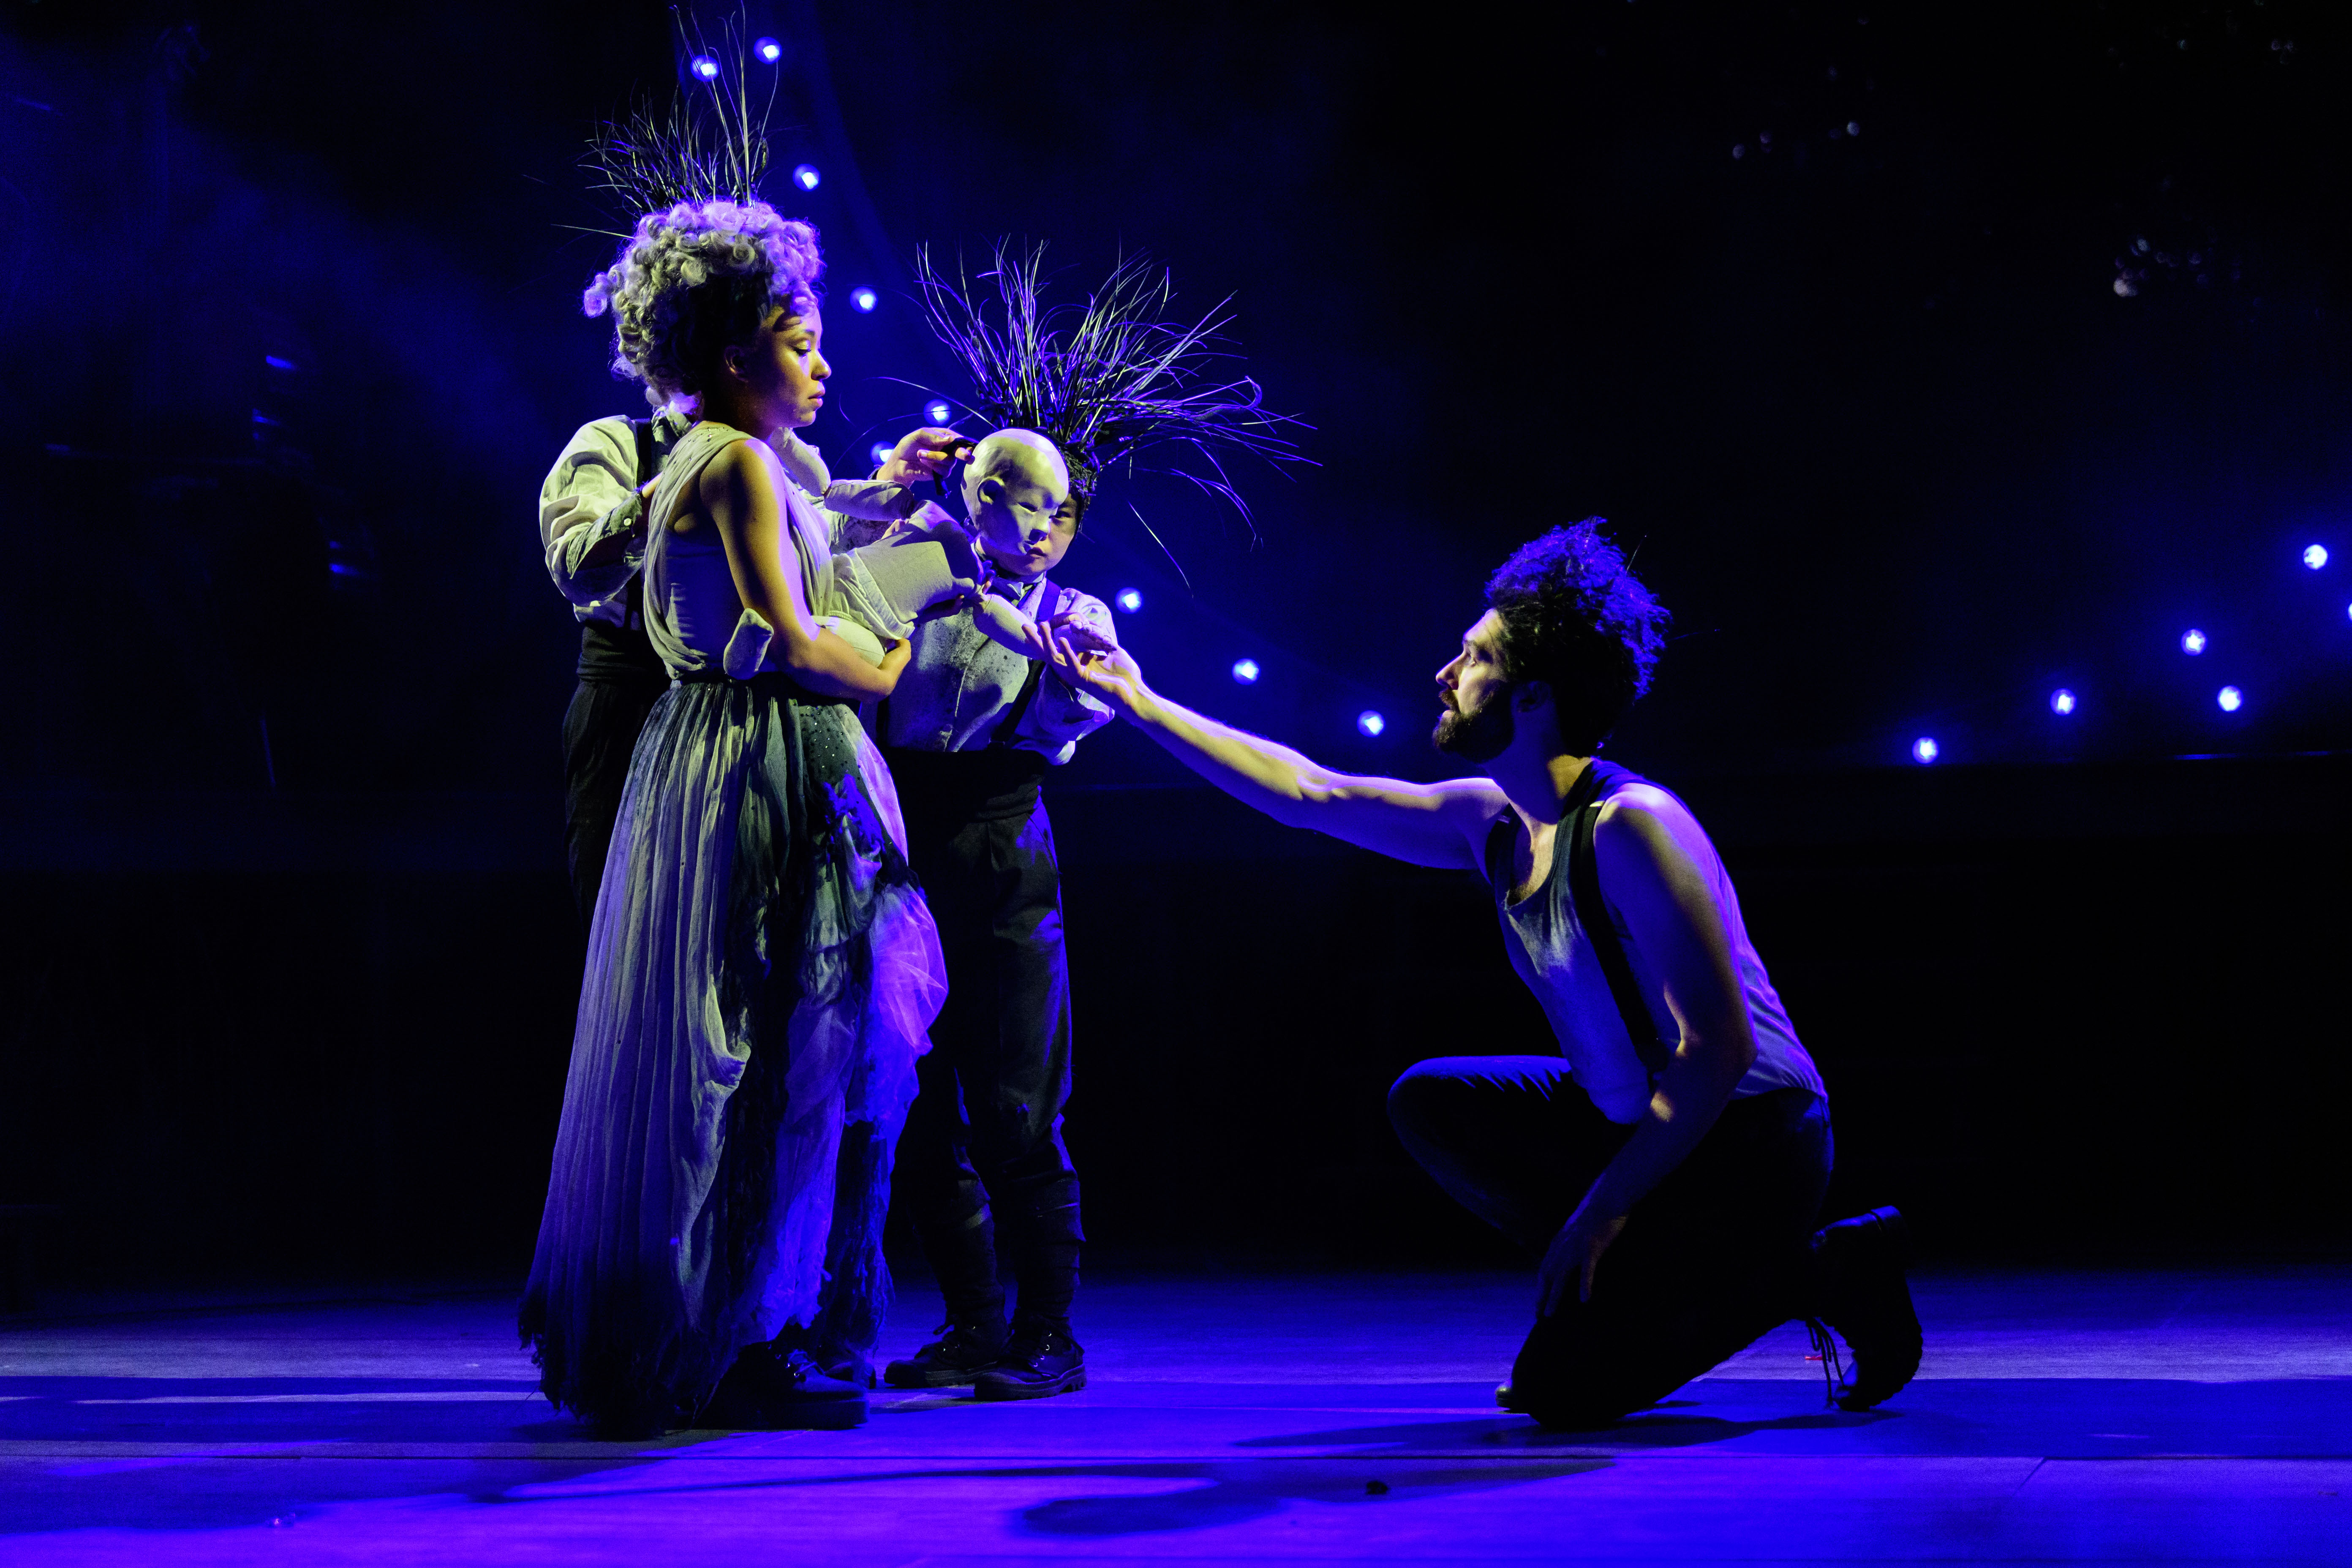 Amber James and Kieran Hill as Titania and Oberon in A Midsummer Night's Dream at the Open Air Theatre. Photo Jane Hobson